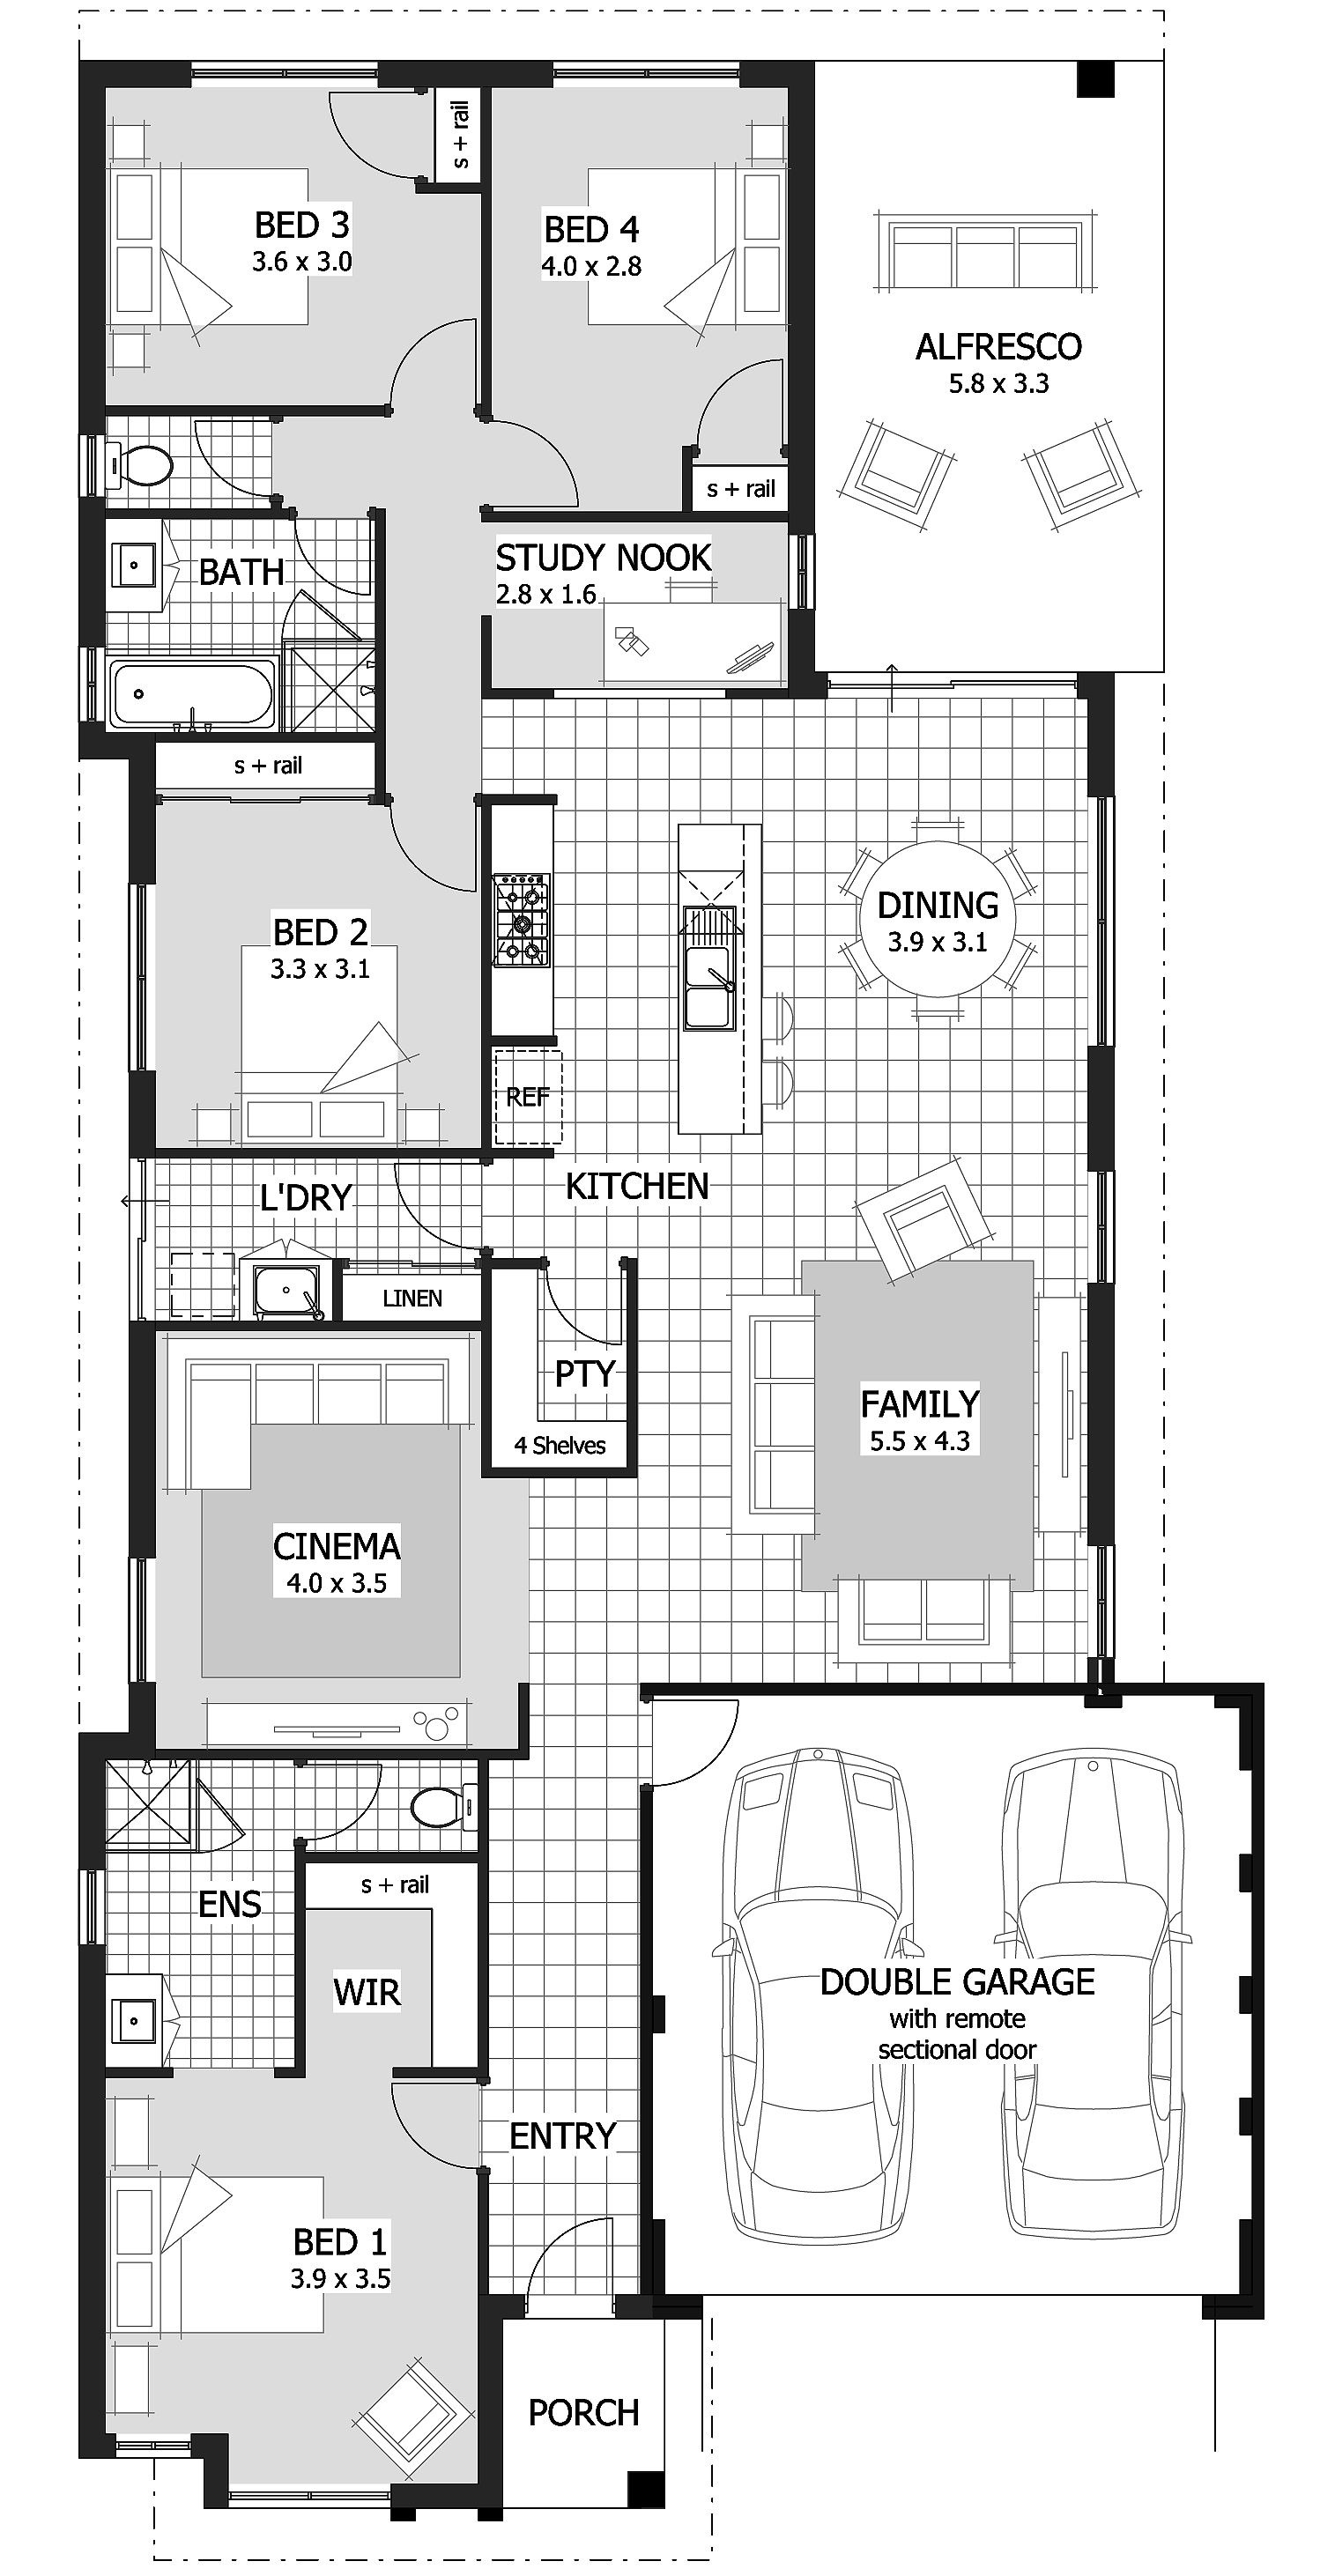 4 Bedroom House Plans Under $200 000 Awesome Home Designs Under $200 000